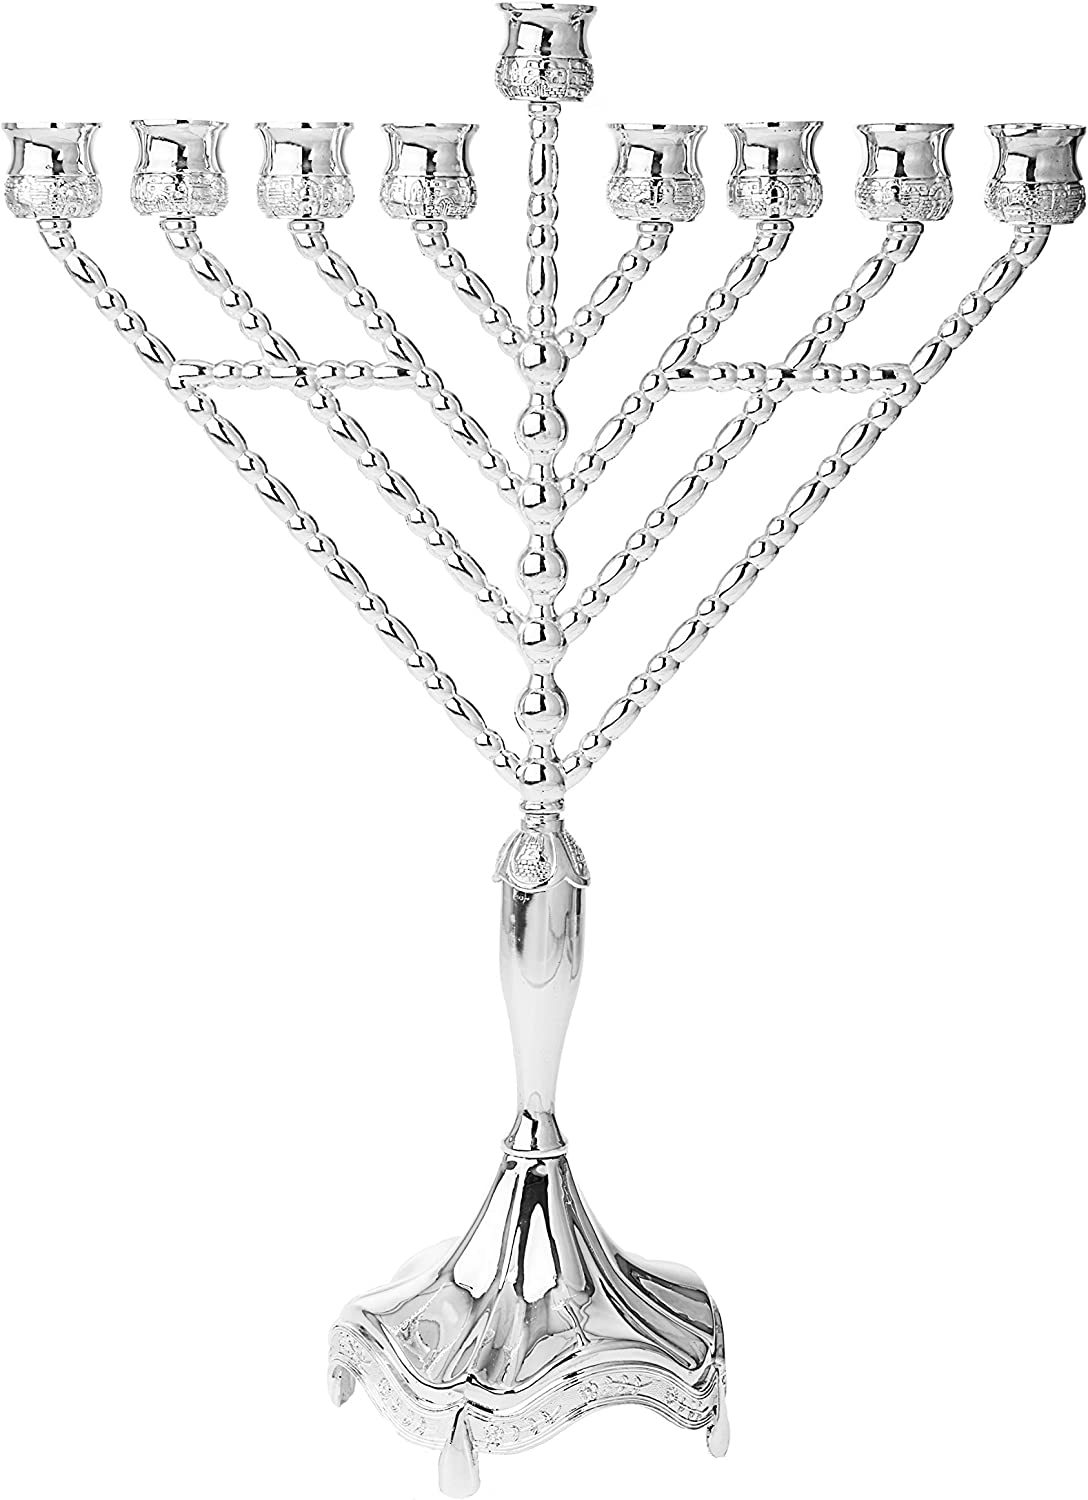 Oil Menorah Silver Plated Chabad Rambam Fits Standard Chanukah Oil Cups and Large Candles